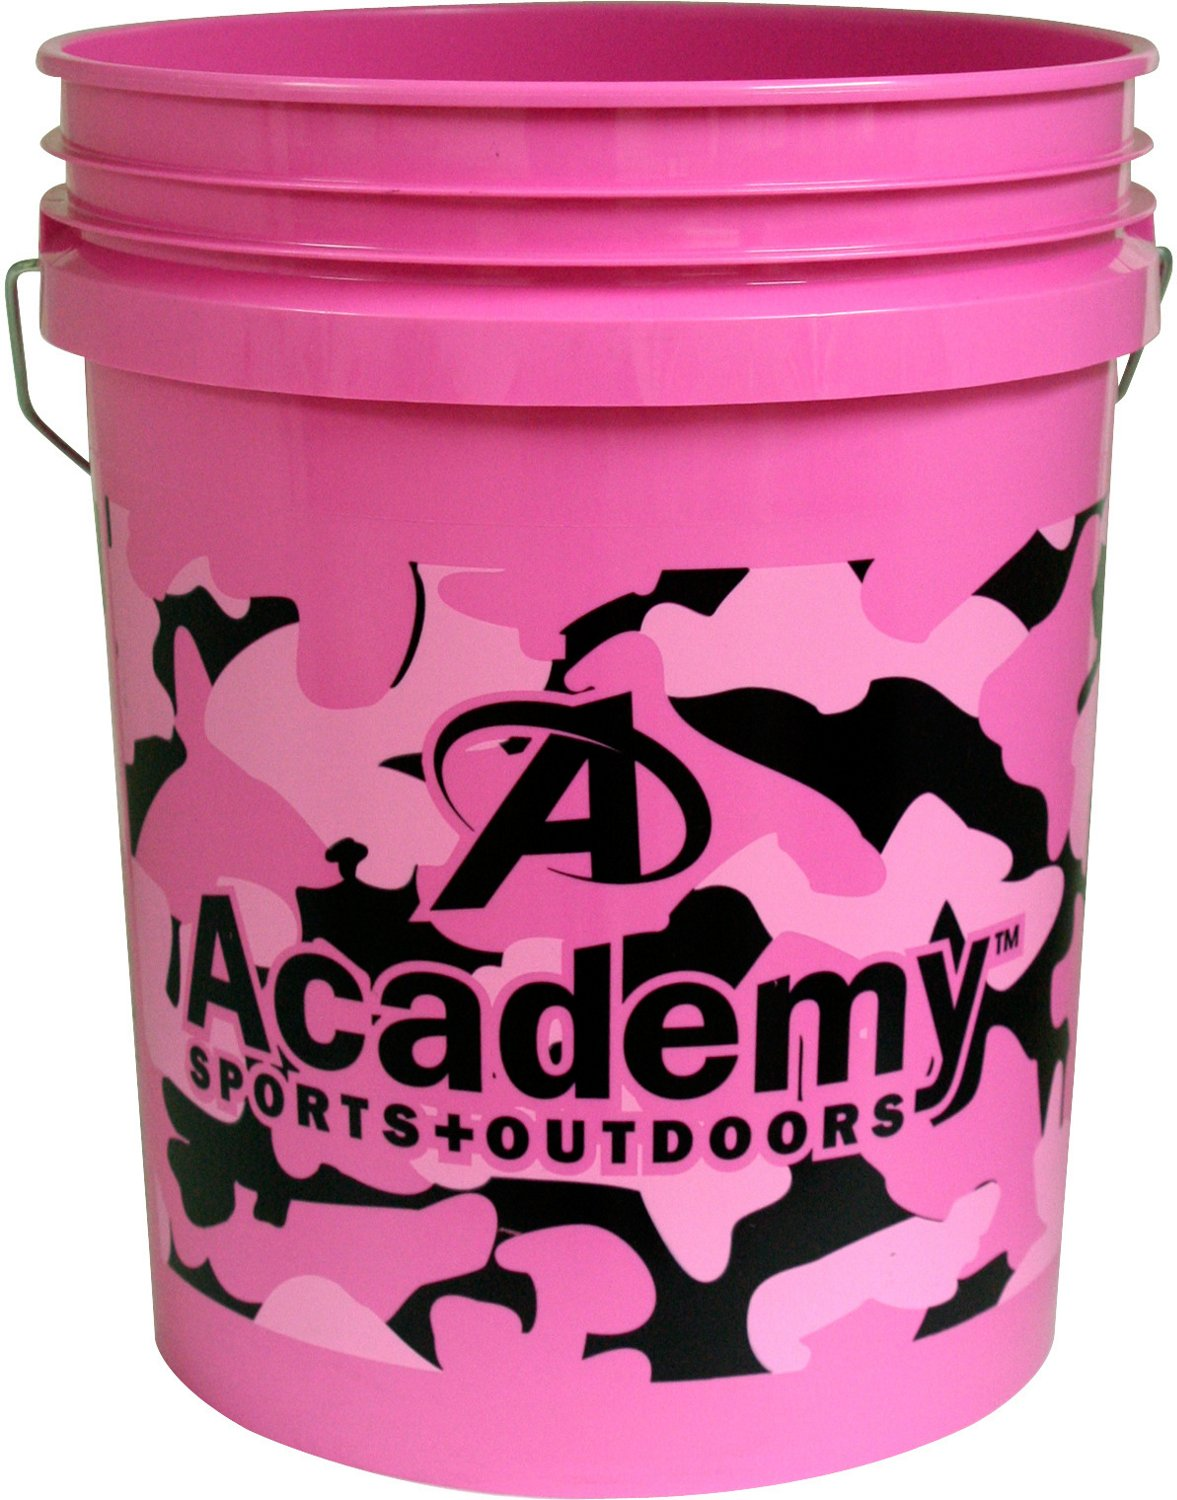 Leaktite Pink Camo 5-Gallon Bucket - view number 1